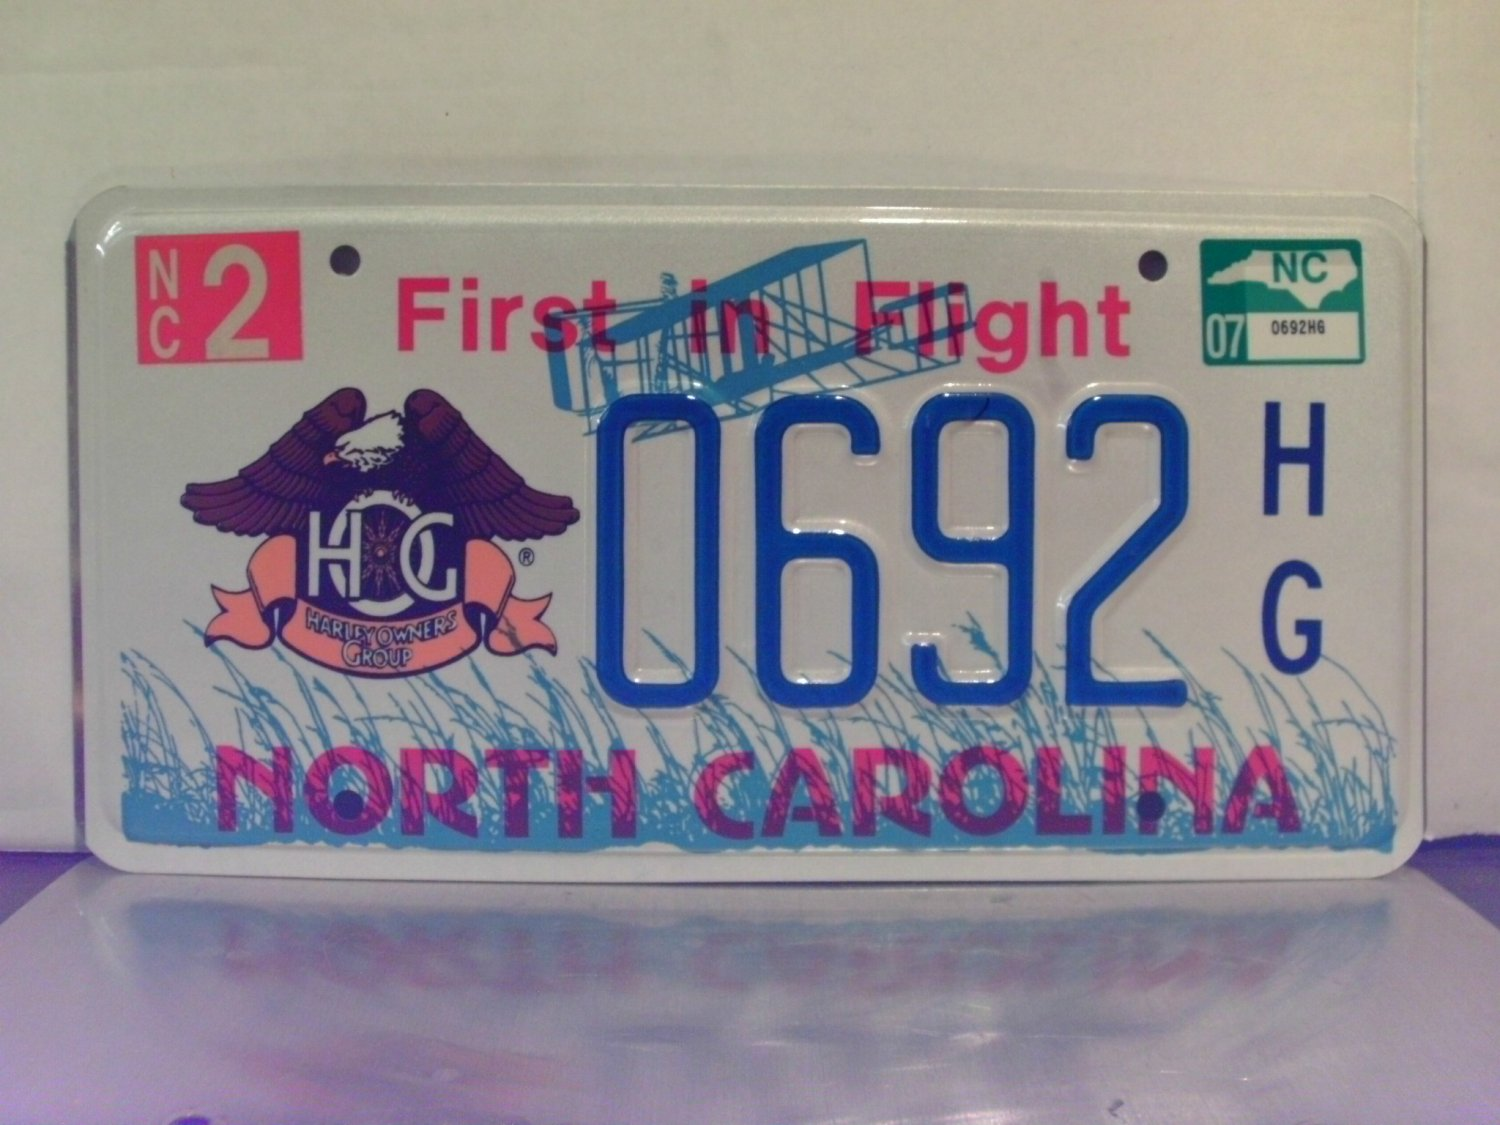 2007 North Carolina NC Harley Owners Group HOG License Plate Tag #0692HG Mint!